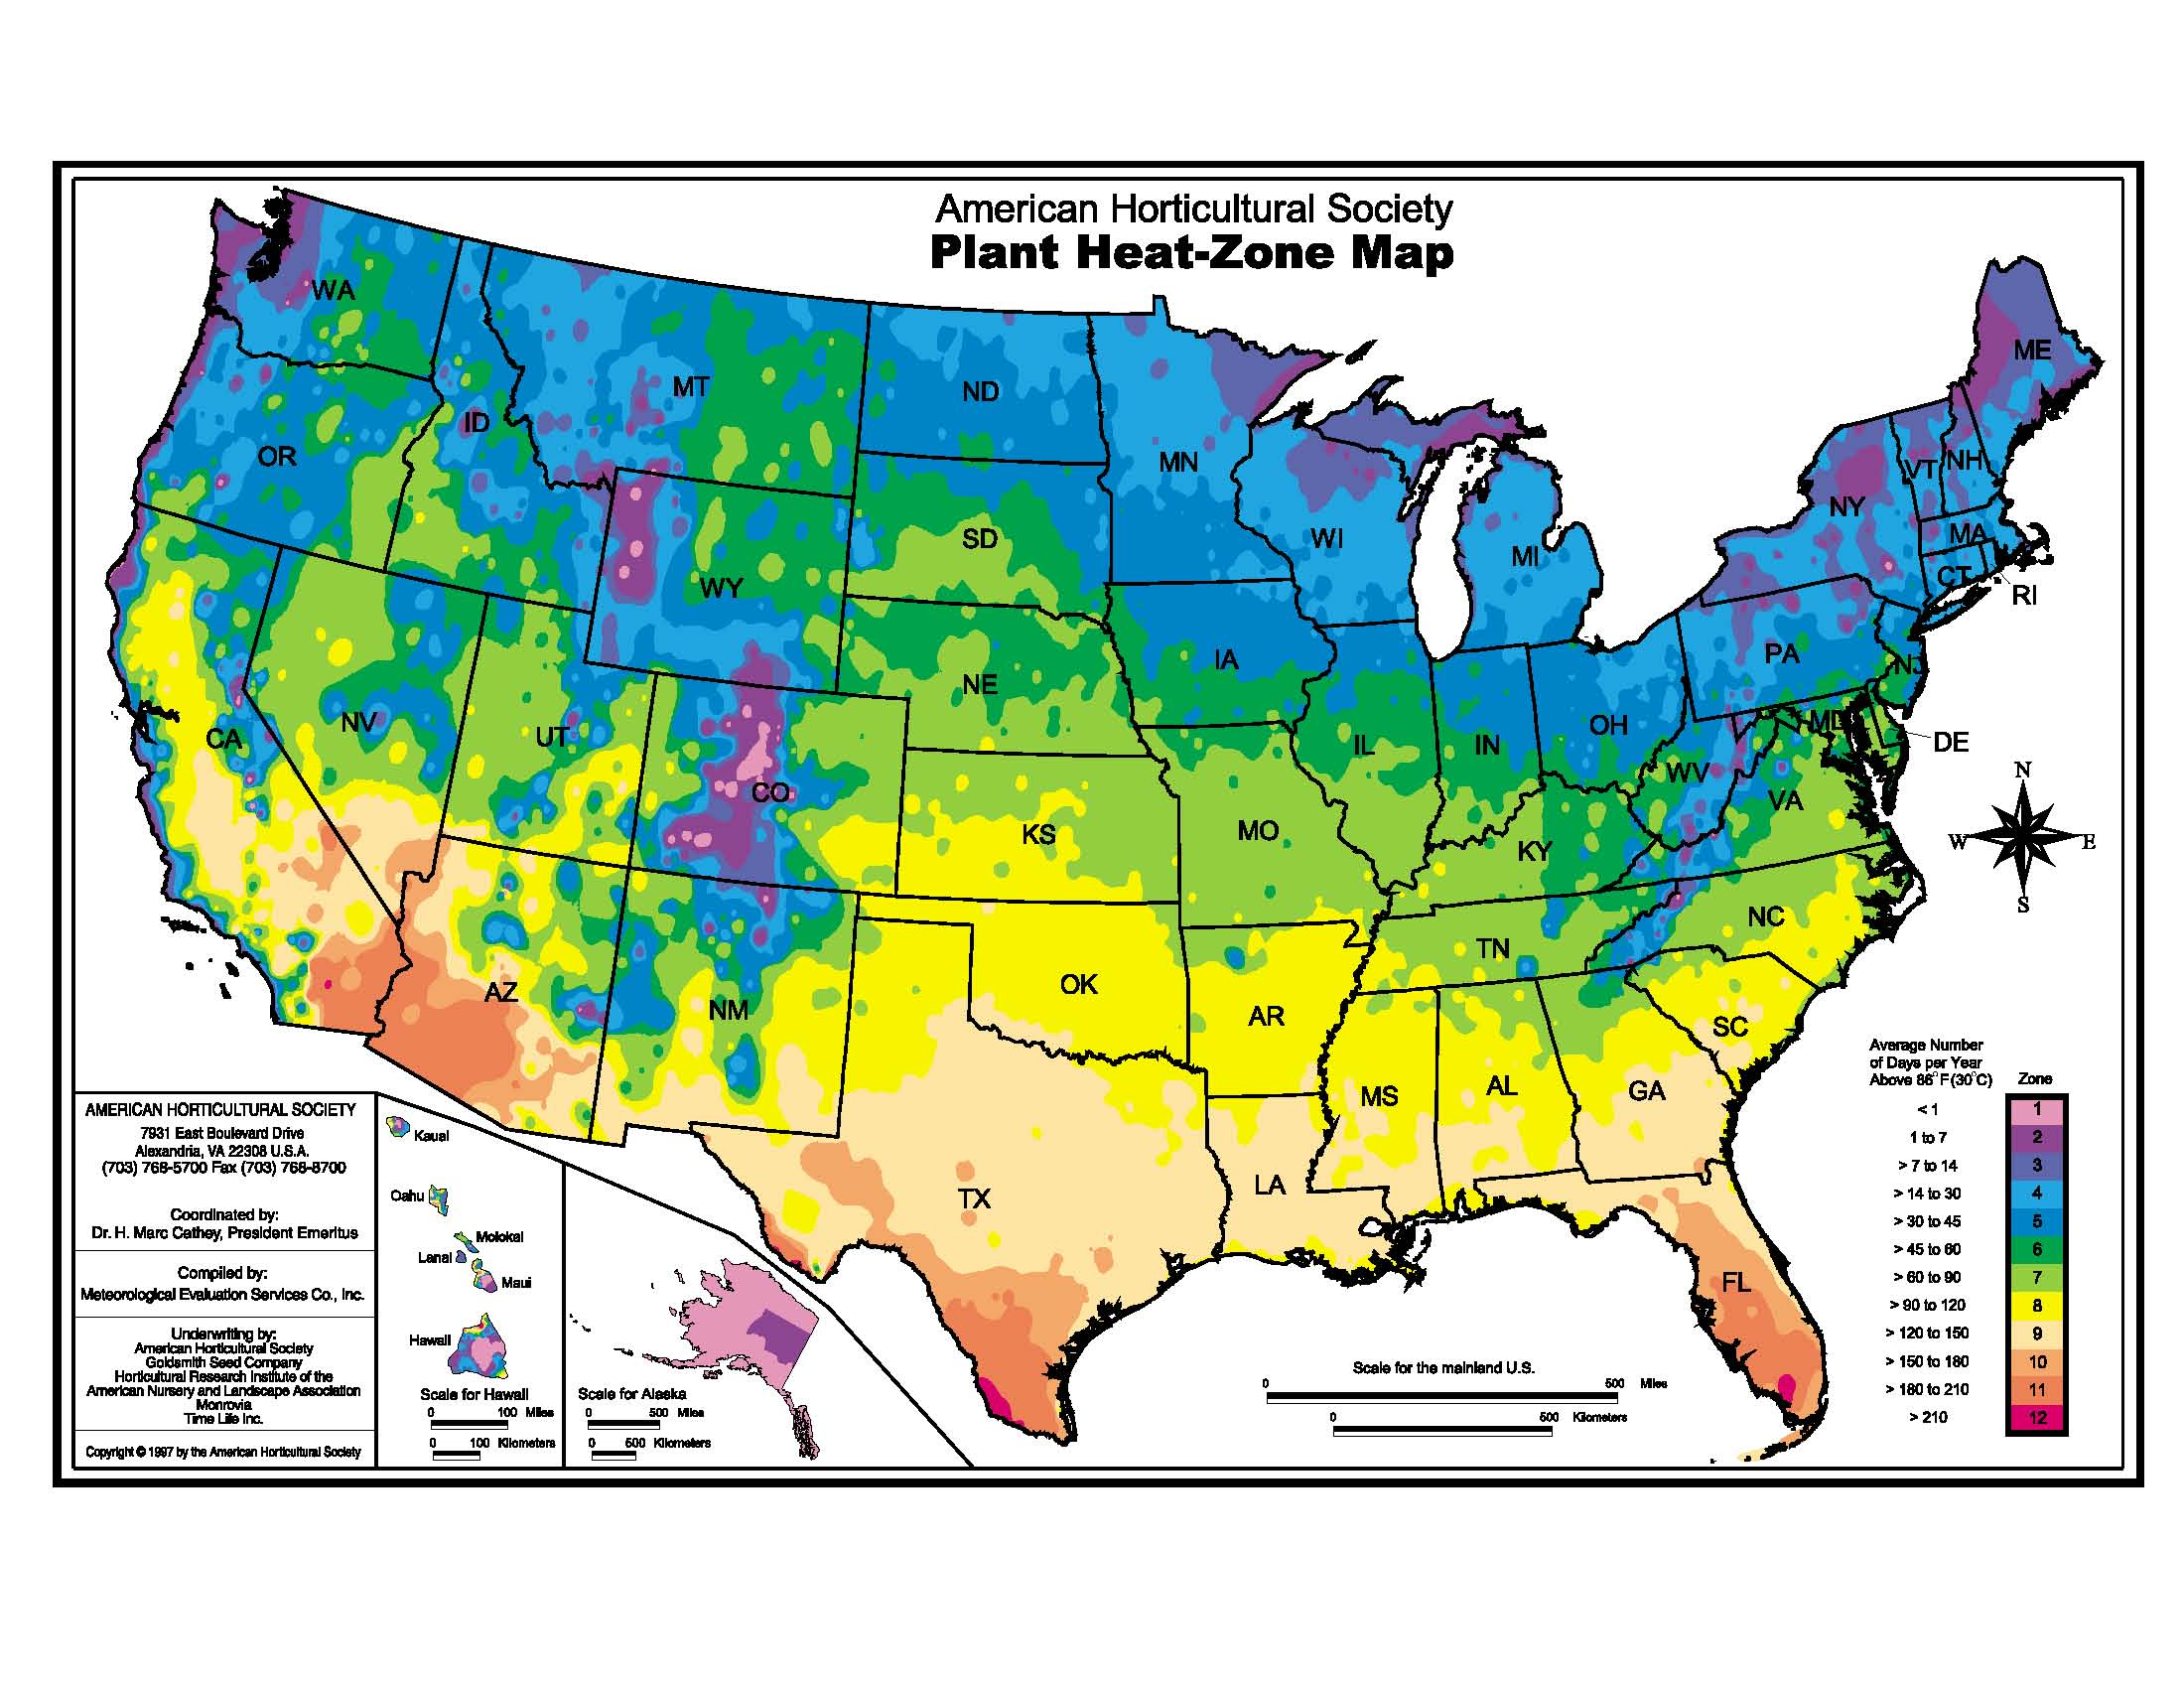 USDA Hardiness Zones Map Sunset Climate Zones And Other Zone Maps - Us weather zones map